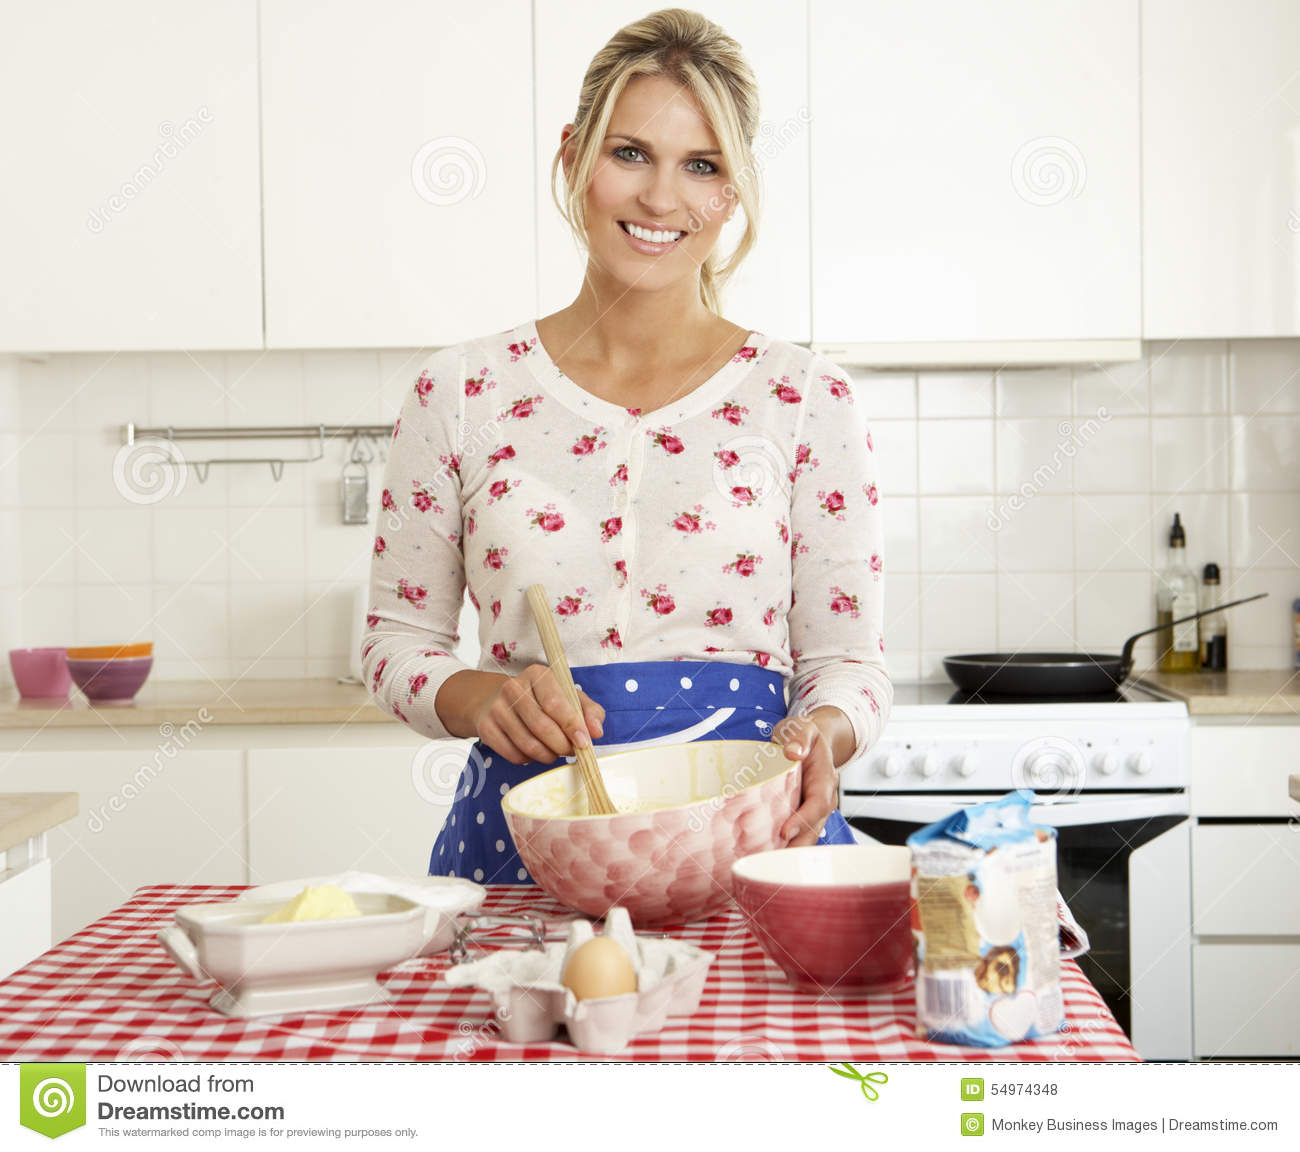 Women Kitchen: Woman Baking In Kitchen Stock Photo